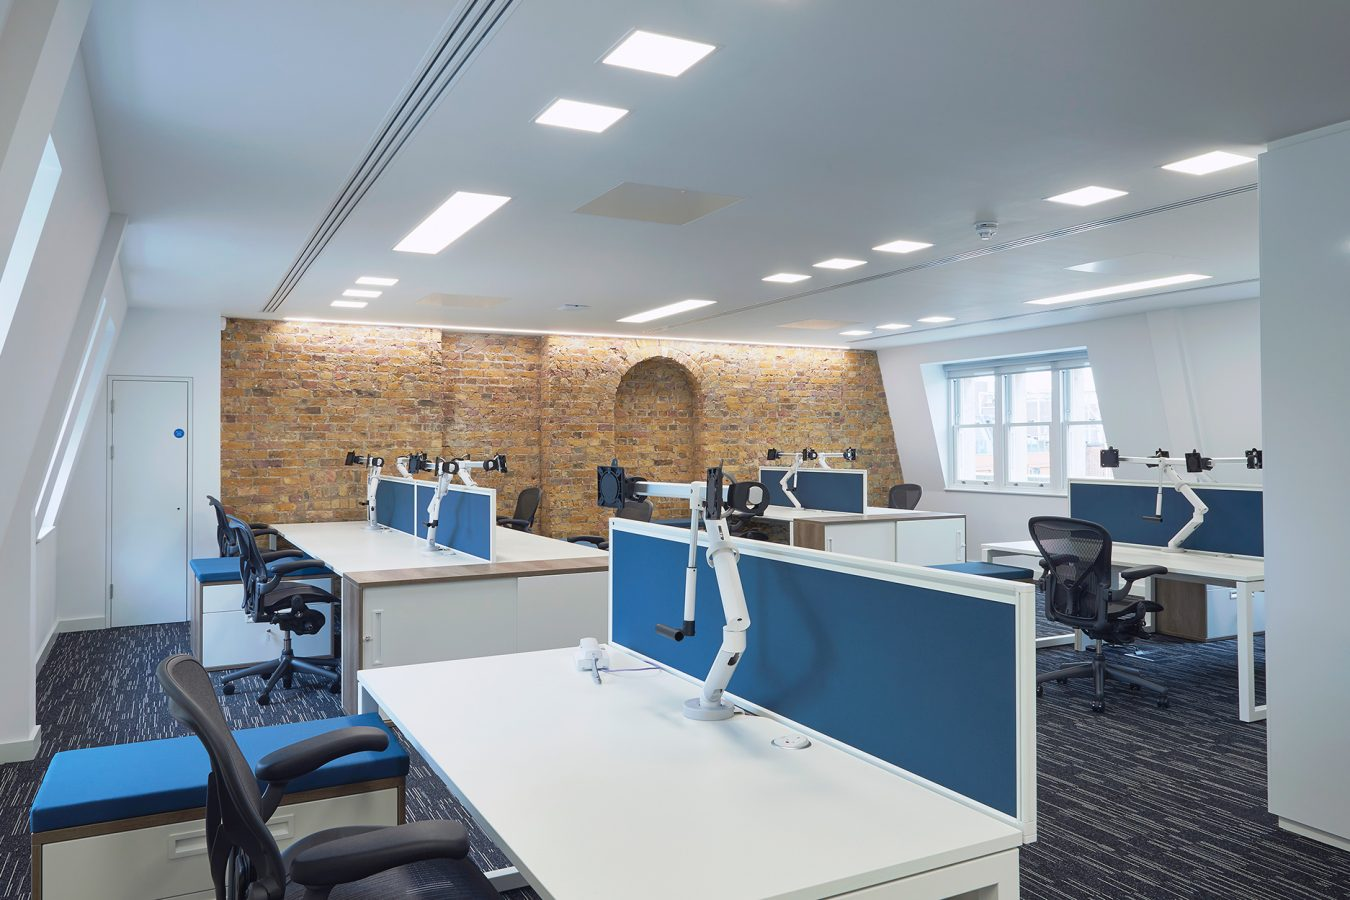 Modern open plan office design project decorated with exposed brickwork, LED lighting and dropped out ceiling, near Bank.